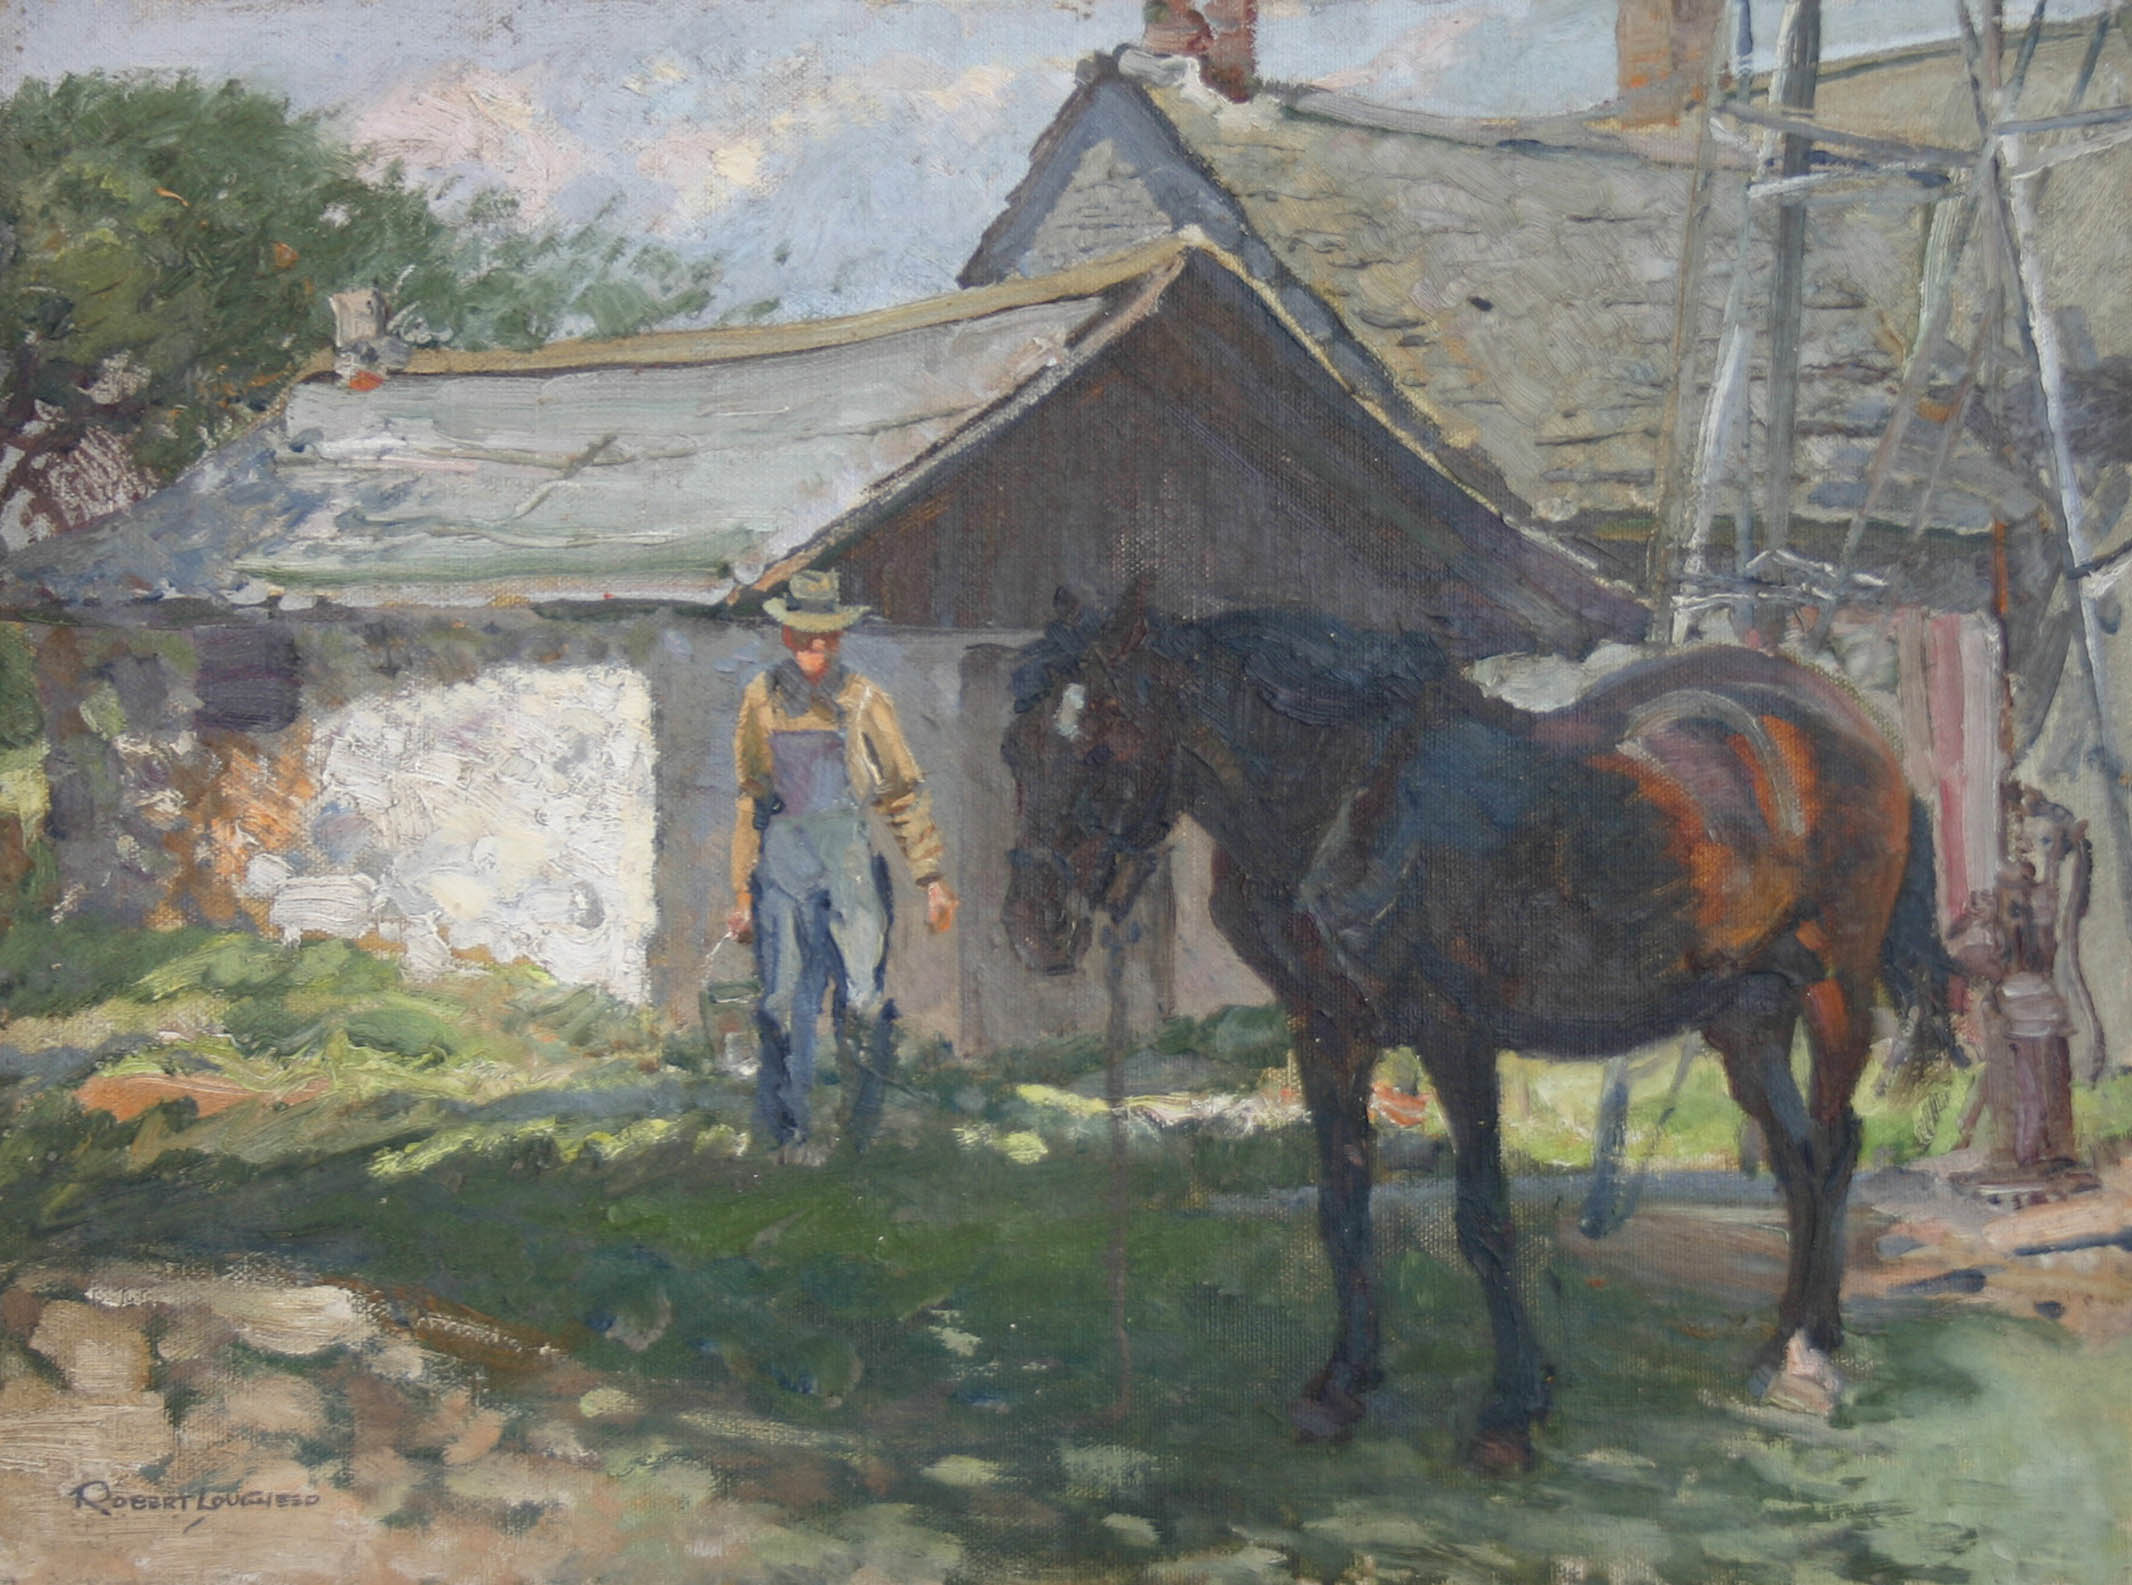 Farmer and Horse by  Robert Lougheed - Masterpiece Online